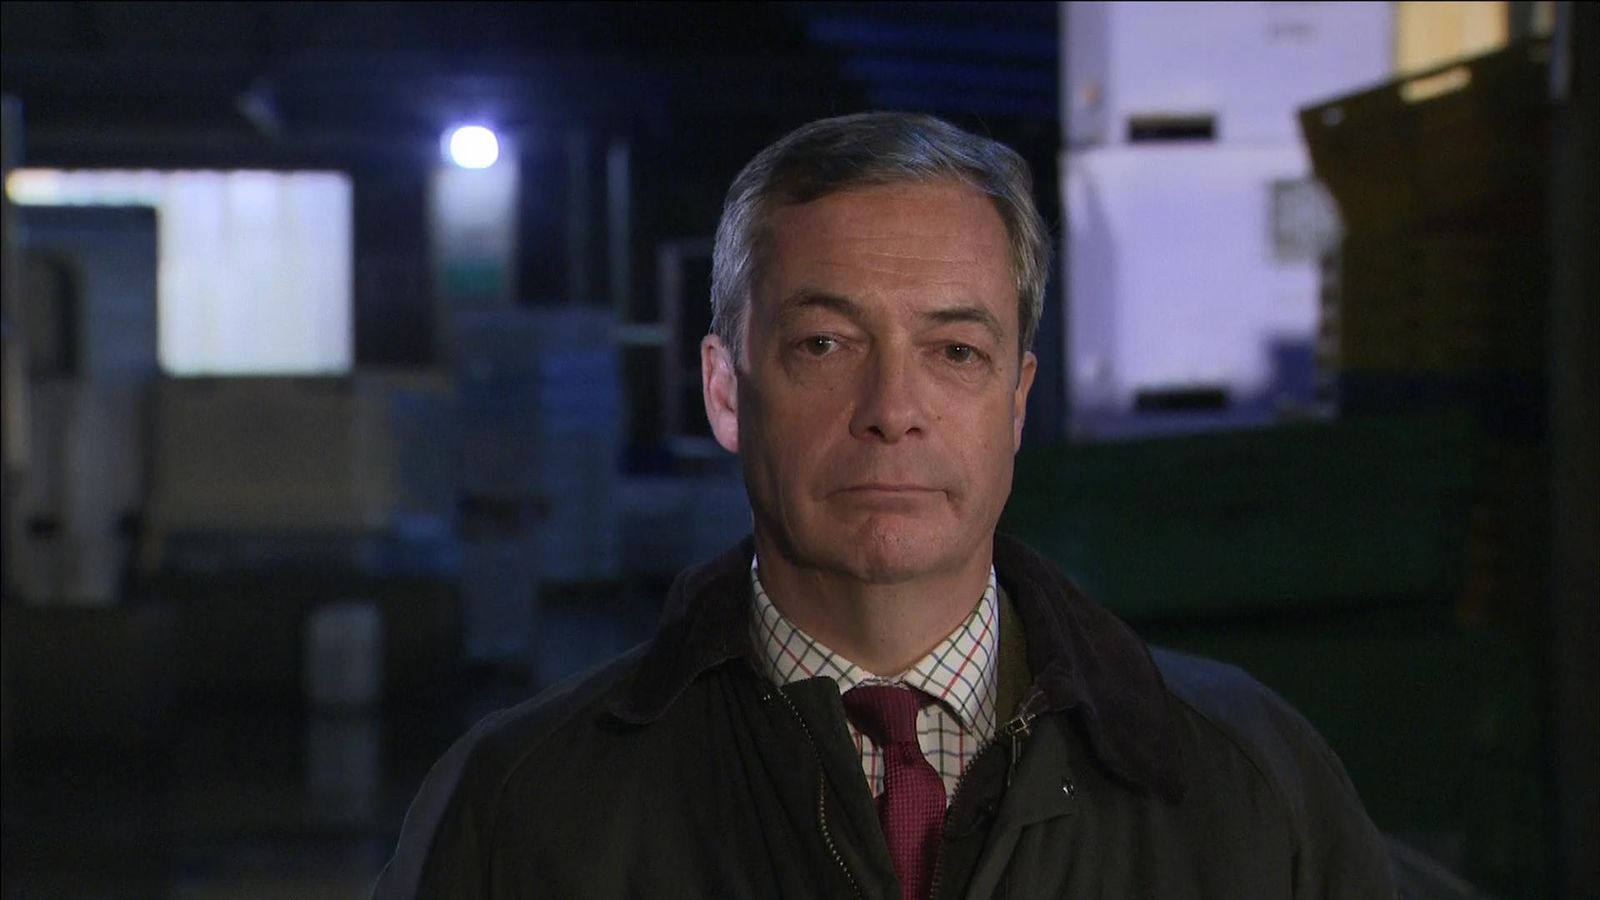 General election: Farage claims No 10 offered Brexit Party candidates jobs to stand down